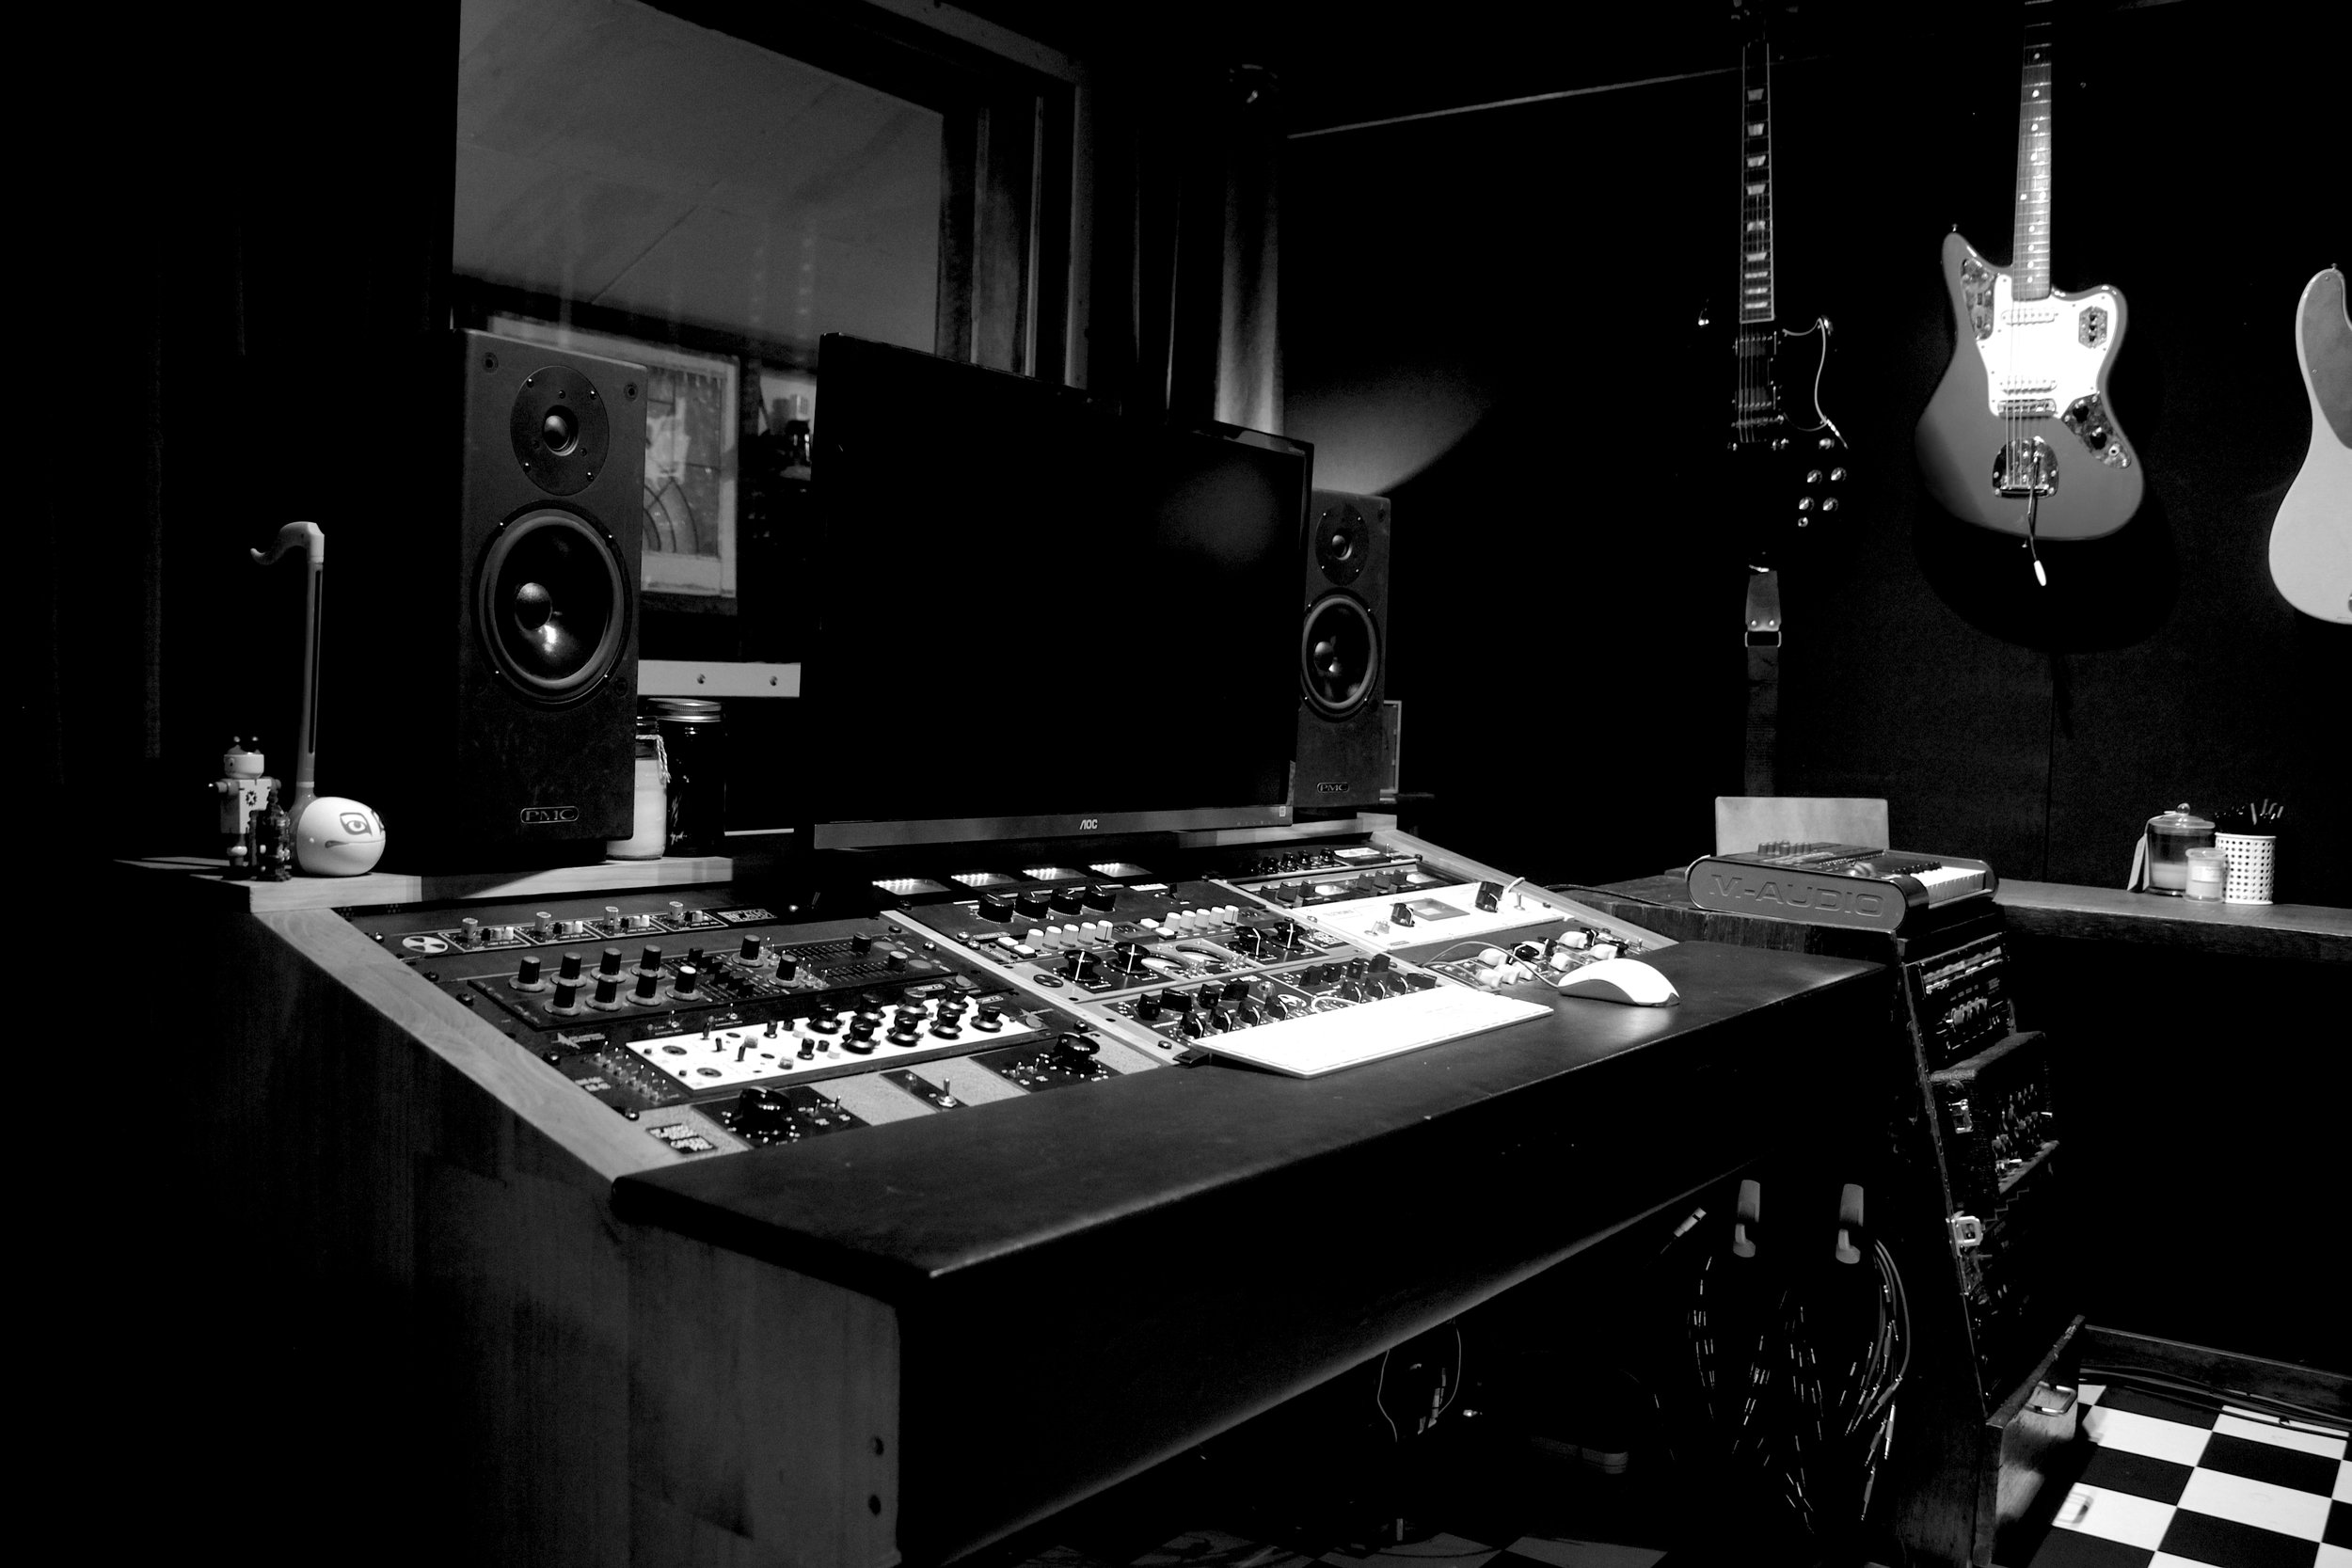 FREQUENTLY ASKED QUESTIONS - About our music production services.